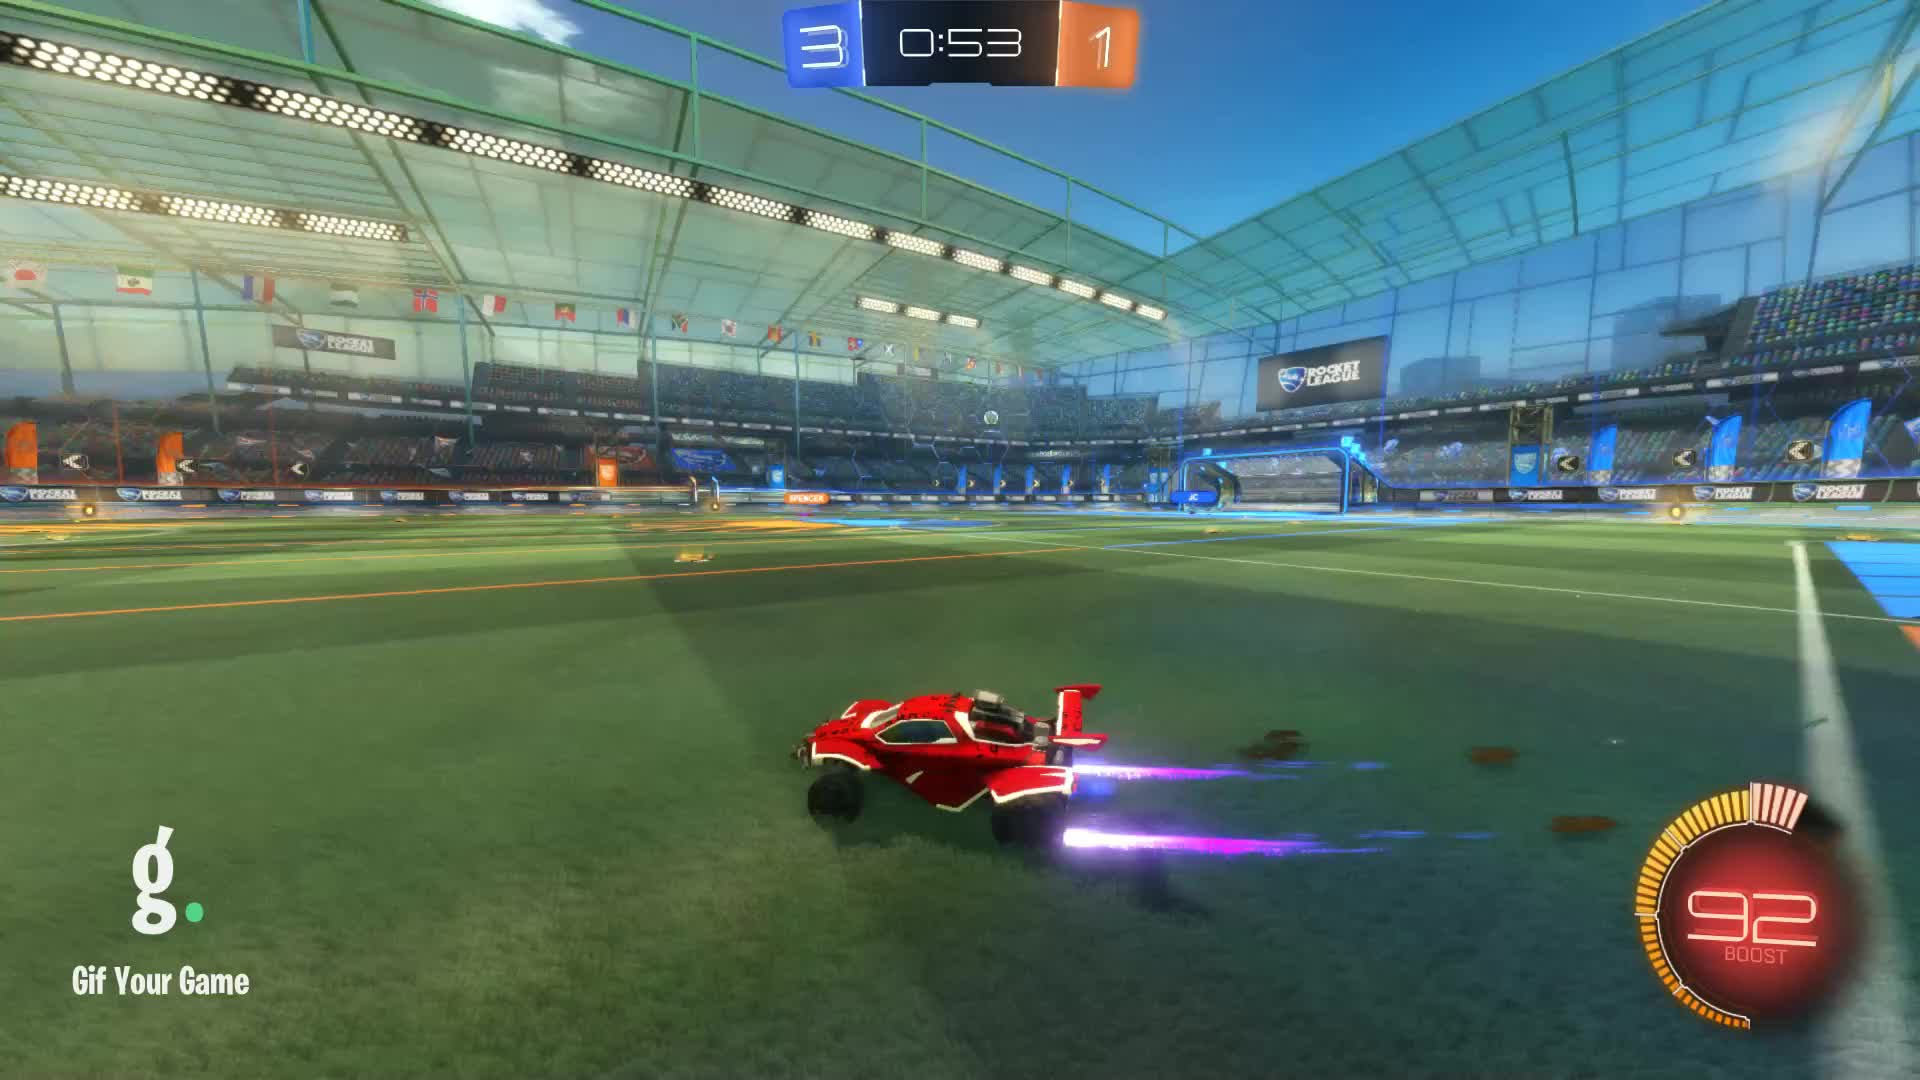 Gif Your Game, GifYourGame, Goal, Rocket League, RocketLeague, teakettle, Goal 5: teakettle GIFs